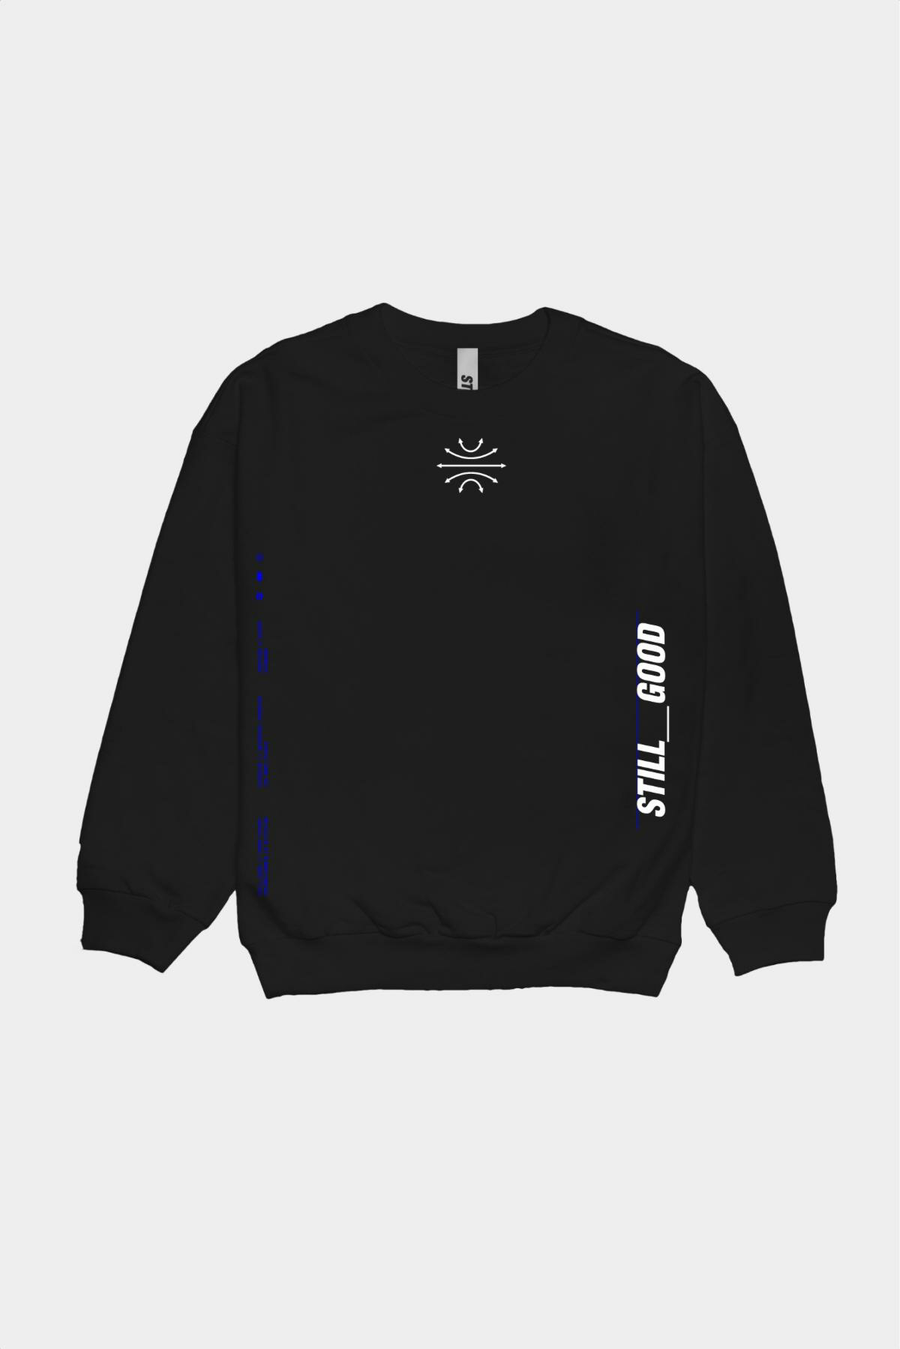 Global V2 Crewneck Black / XS | Still Good